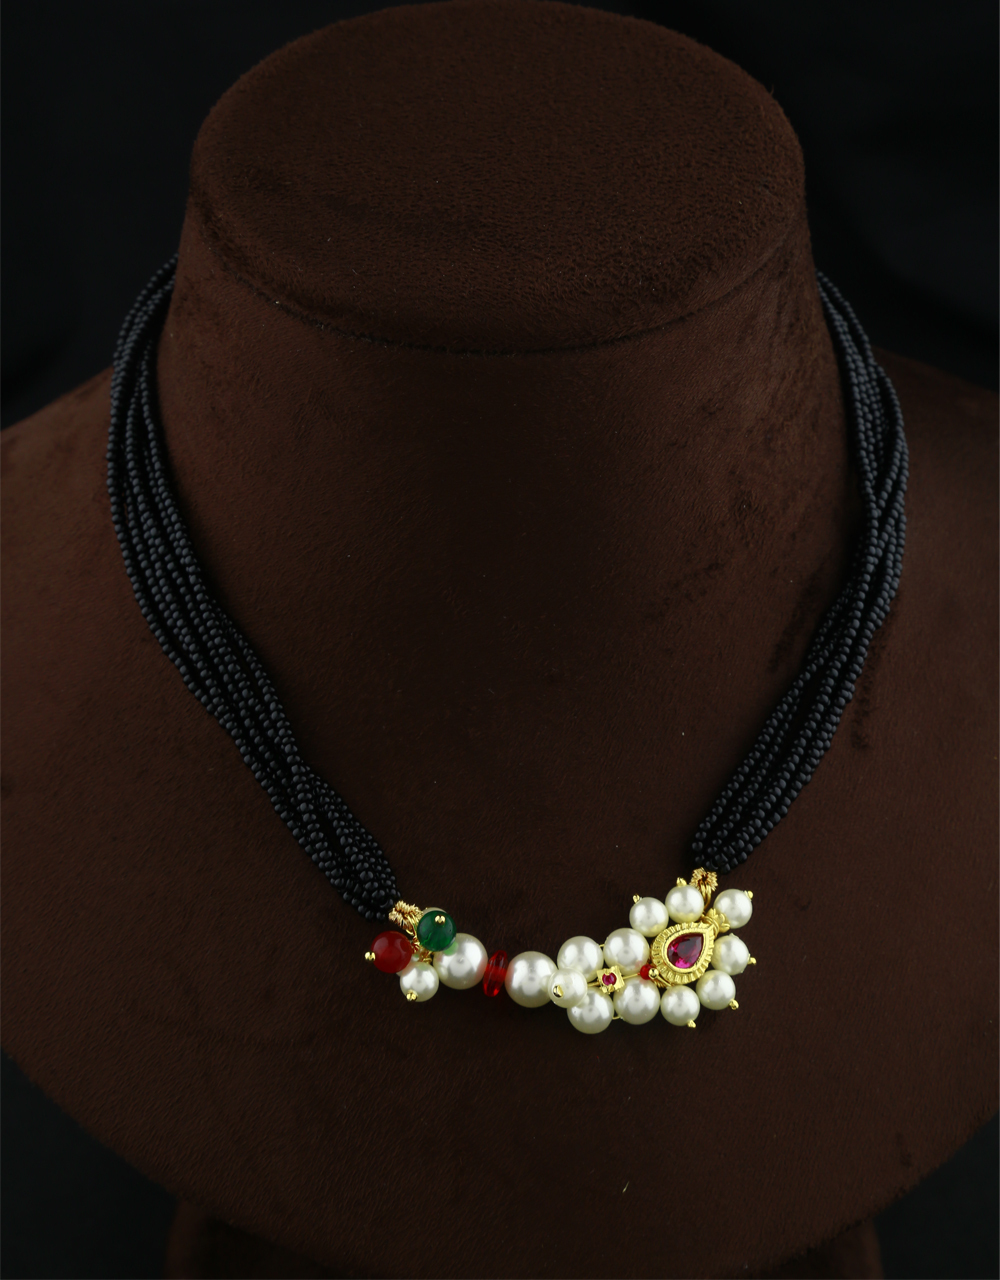 Exclusive Pink-Green Colour Traditional Thushi Necklace For Women Traditional Black Beads Thushi Mangalsutra For Women